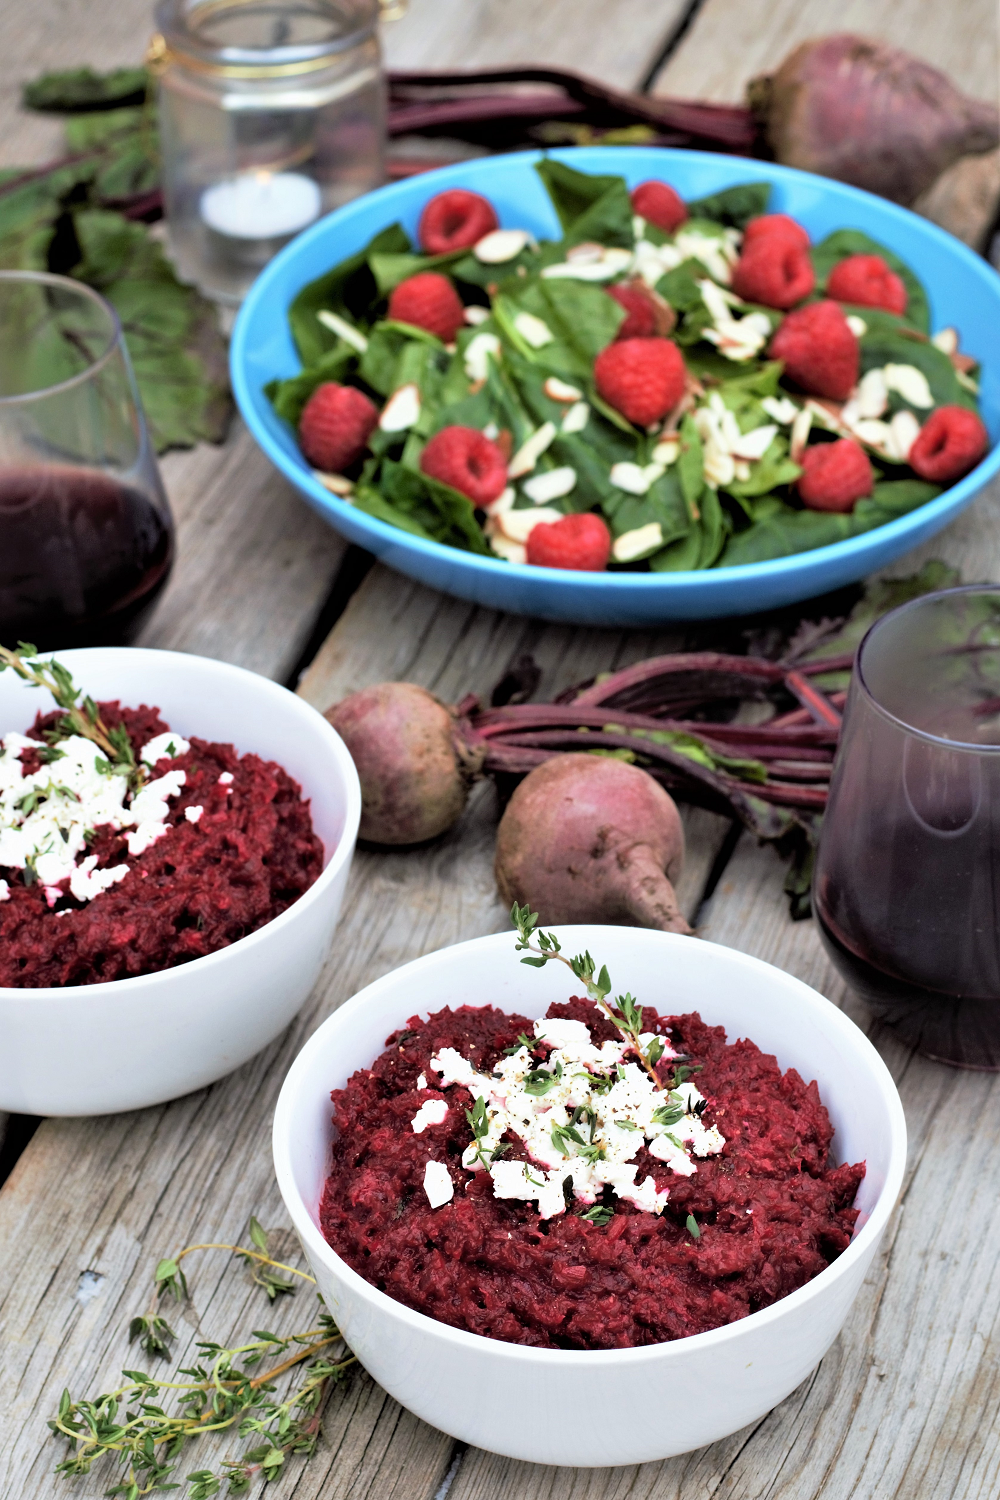 Impress your Valentine with this brilliantly garnet beetroot risotto with creamy goat cheese & earthy thyme, packed with a whole pound of fresh beets for a light & refreshing meal!